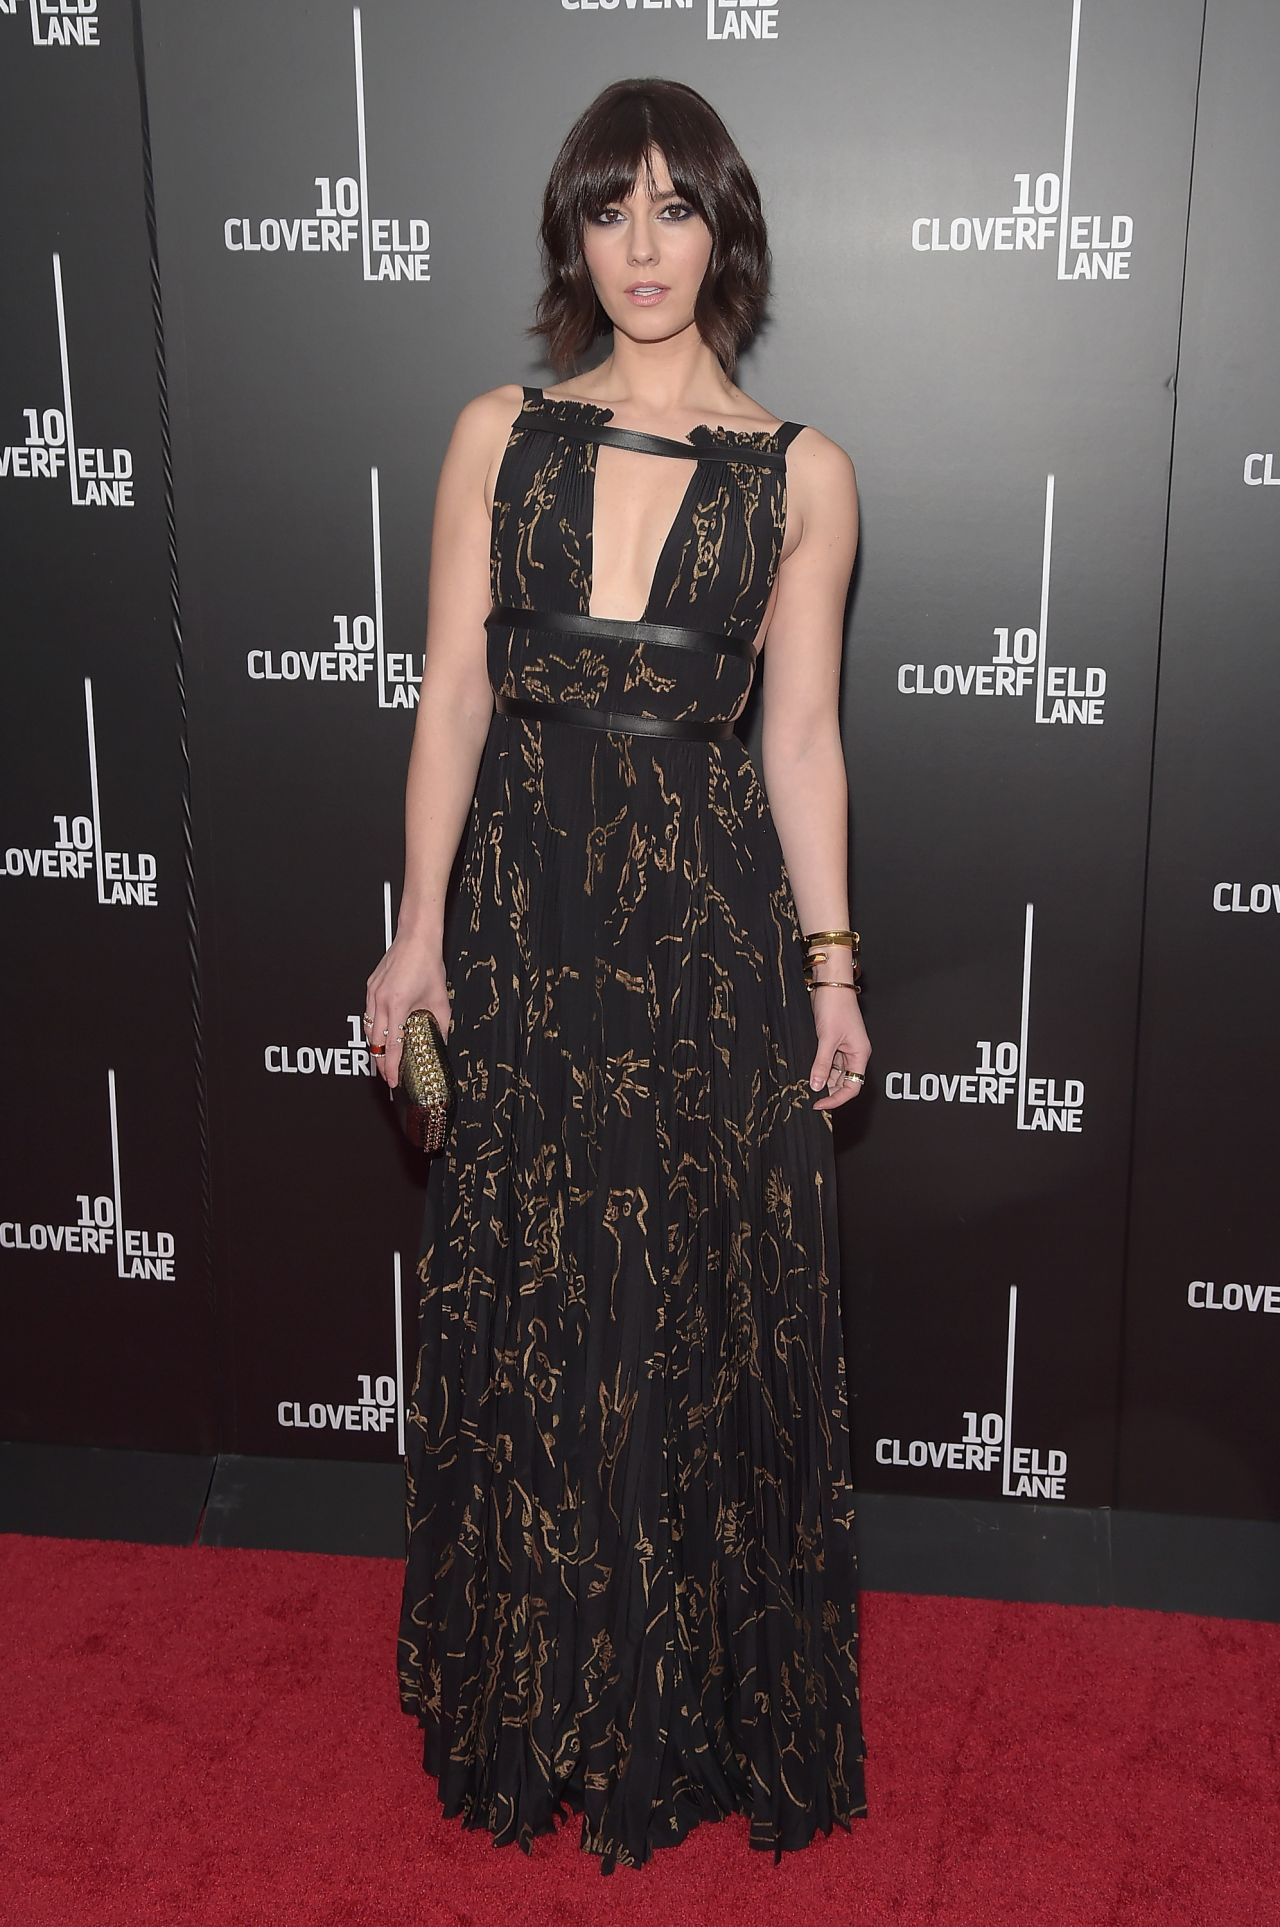 mary-elizabeth-winstead-10-cloverfield-lane-premiere-in-new-york-city-10